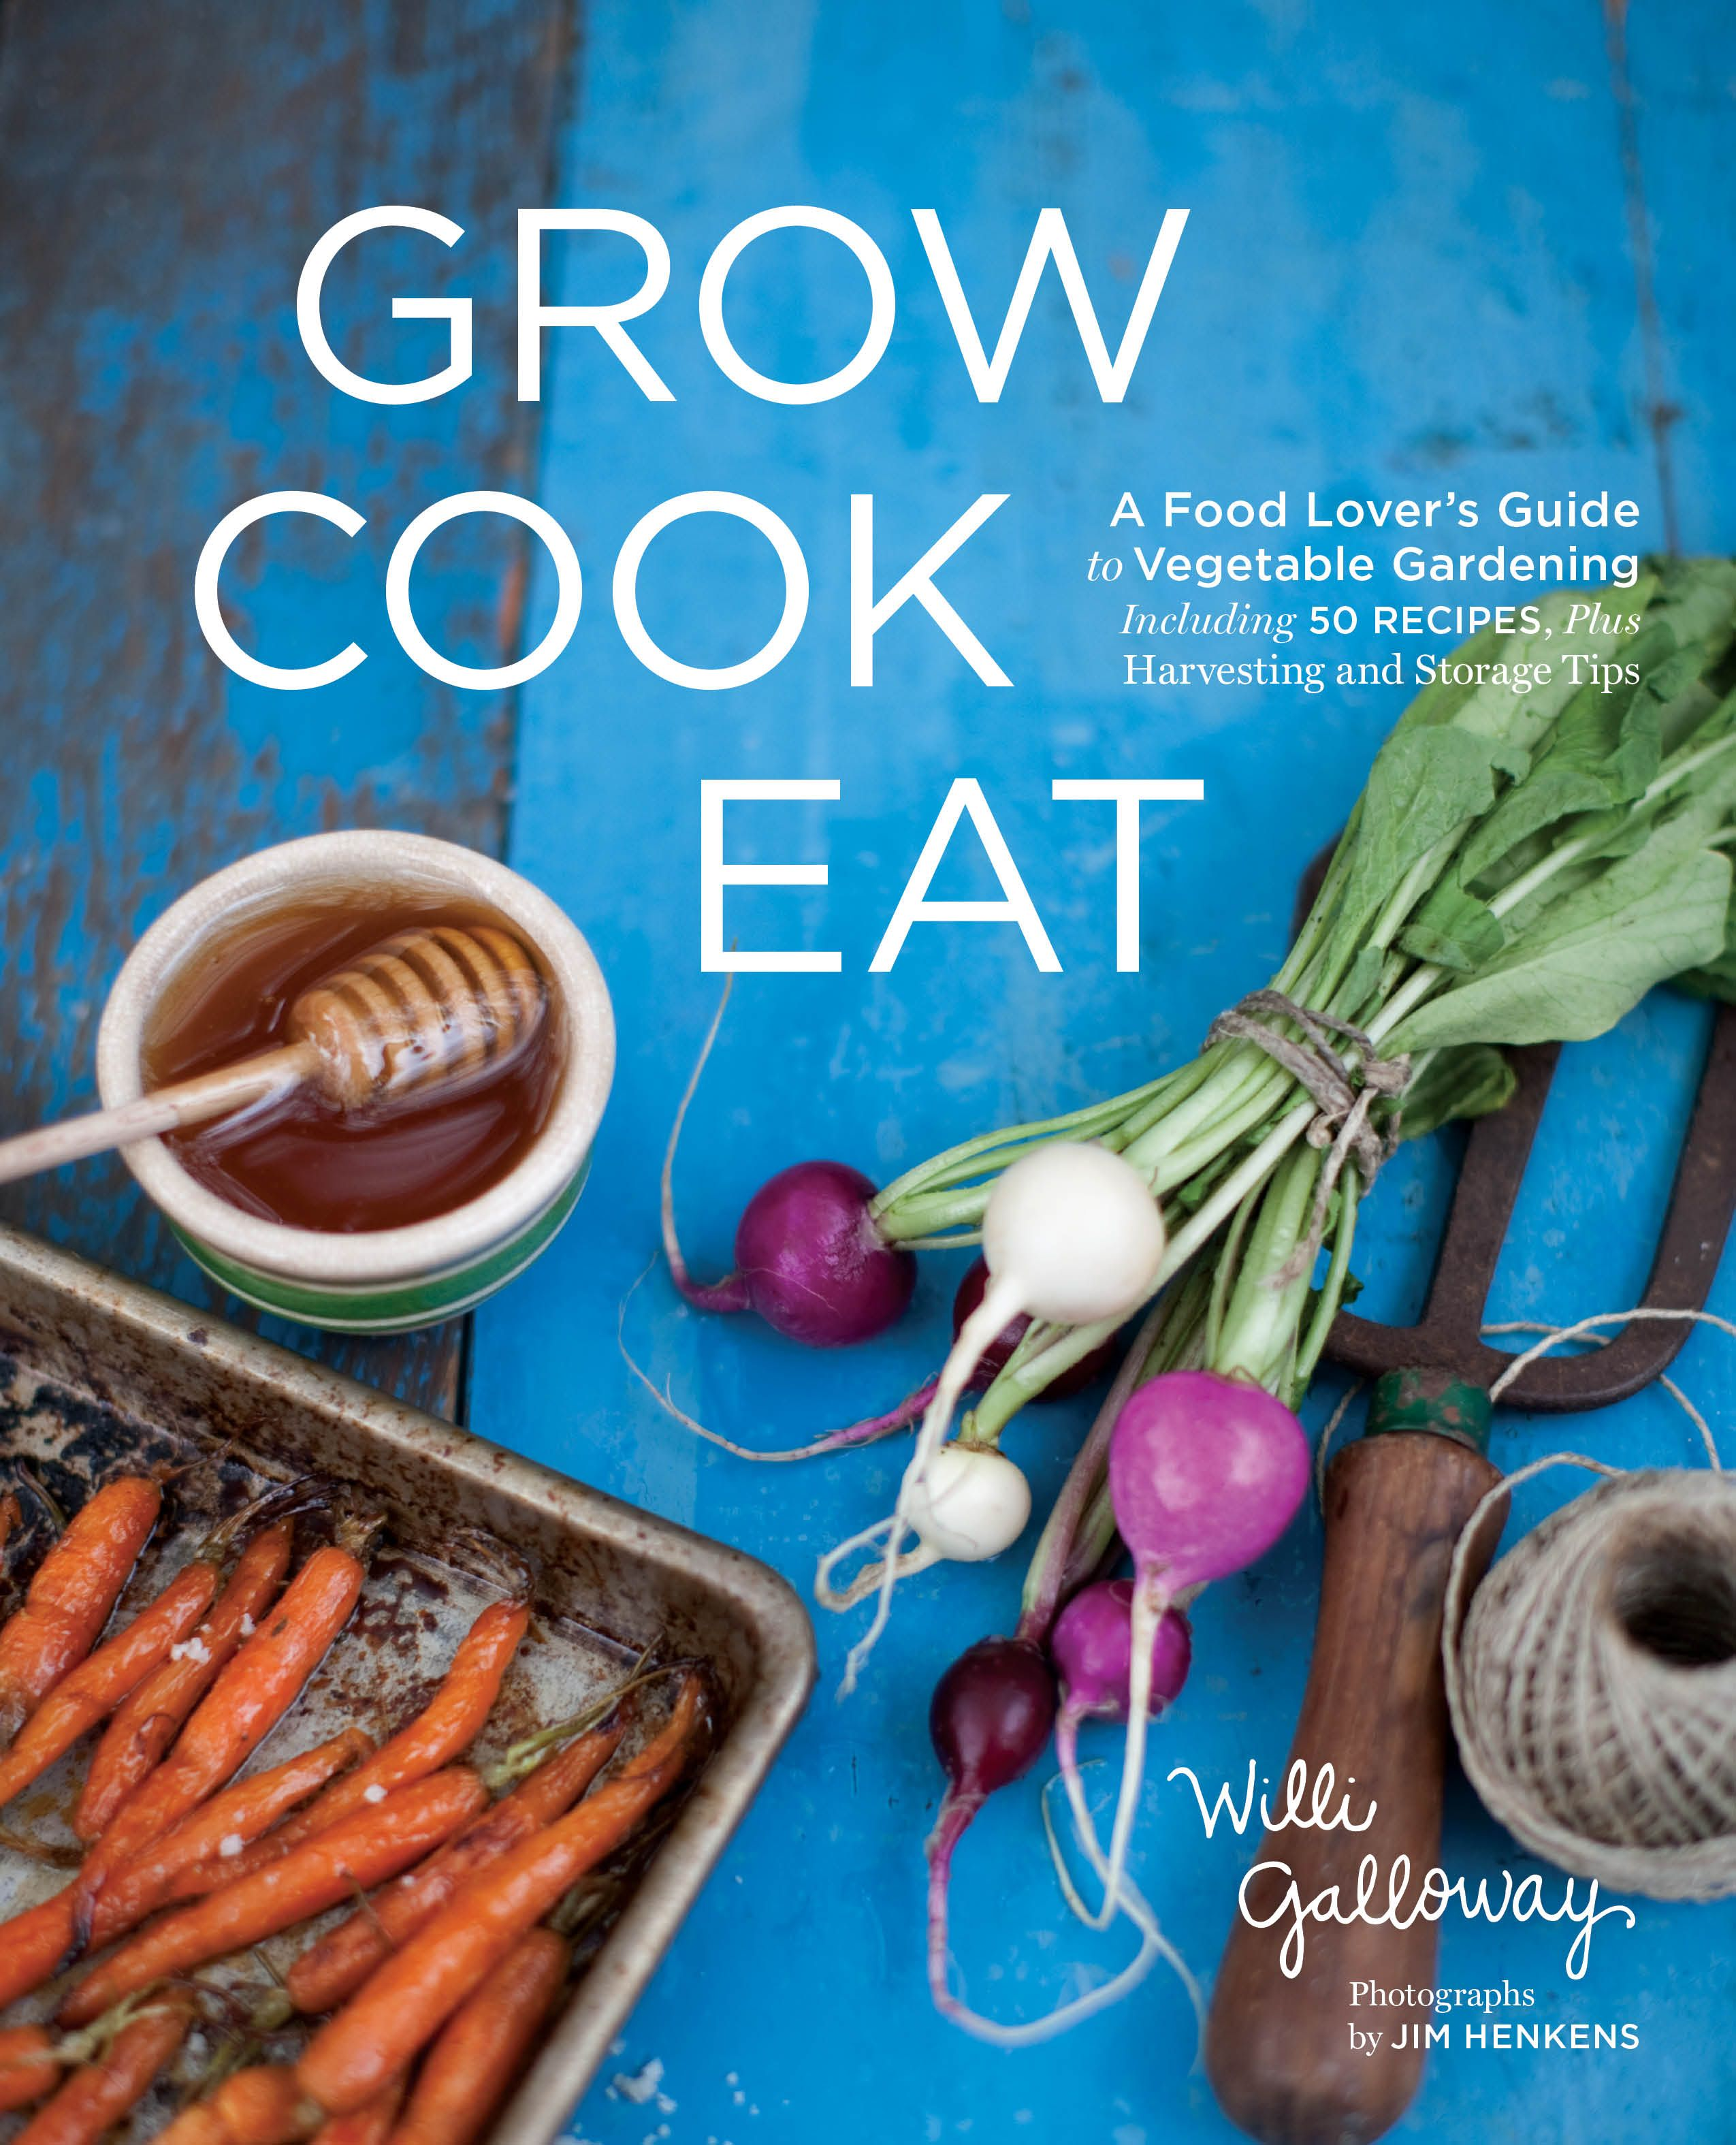 This book looks great gardening inspiration with recipes for grow cook eat a food lovers guide to vegetable gardening including 50 recipes plus harvesting storage tips from my friend willi galloway grocery forumfinder Gallery